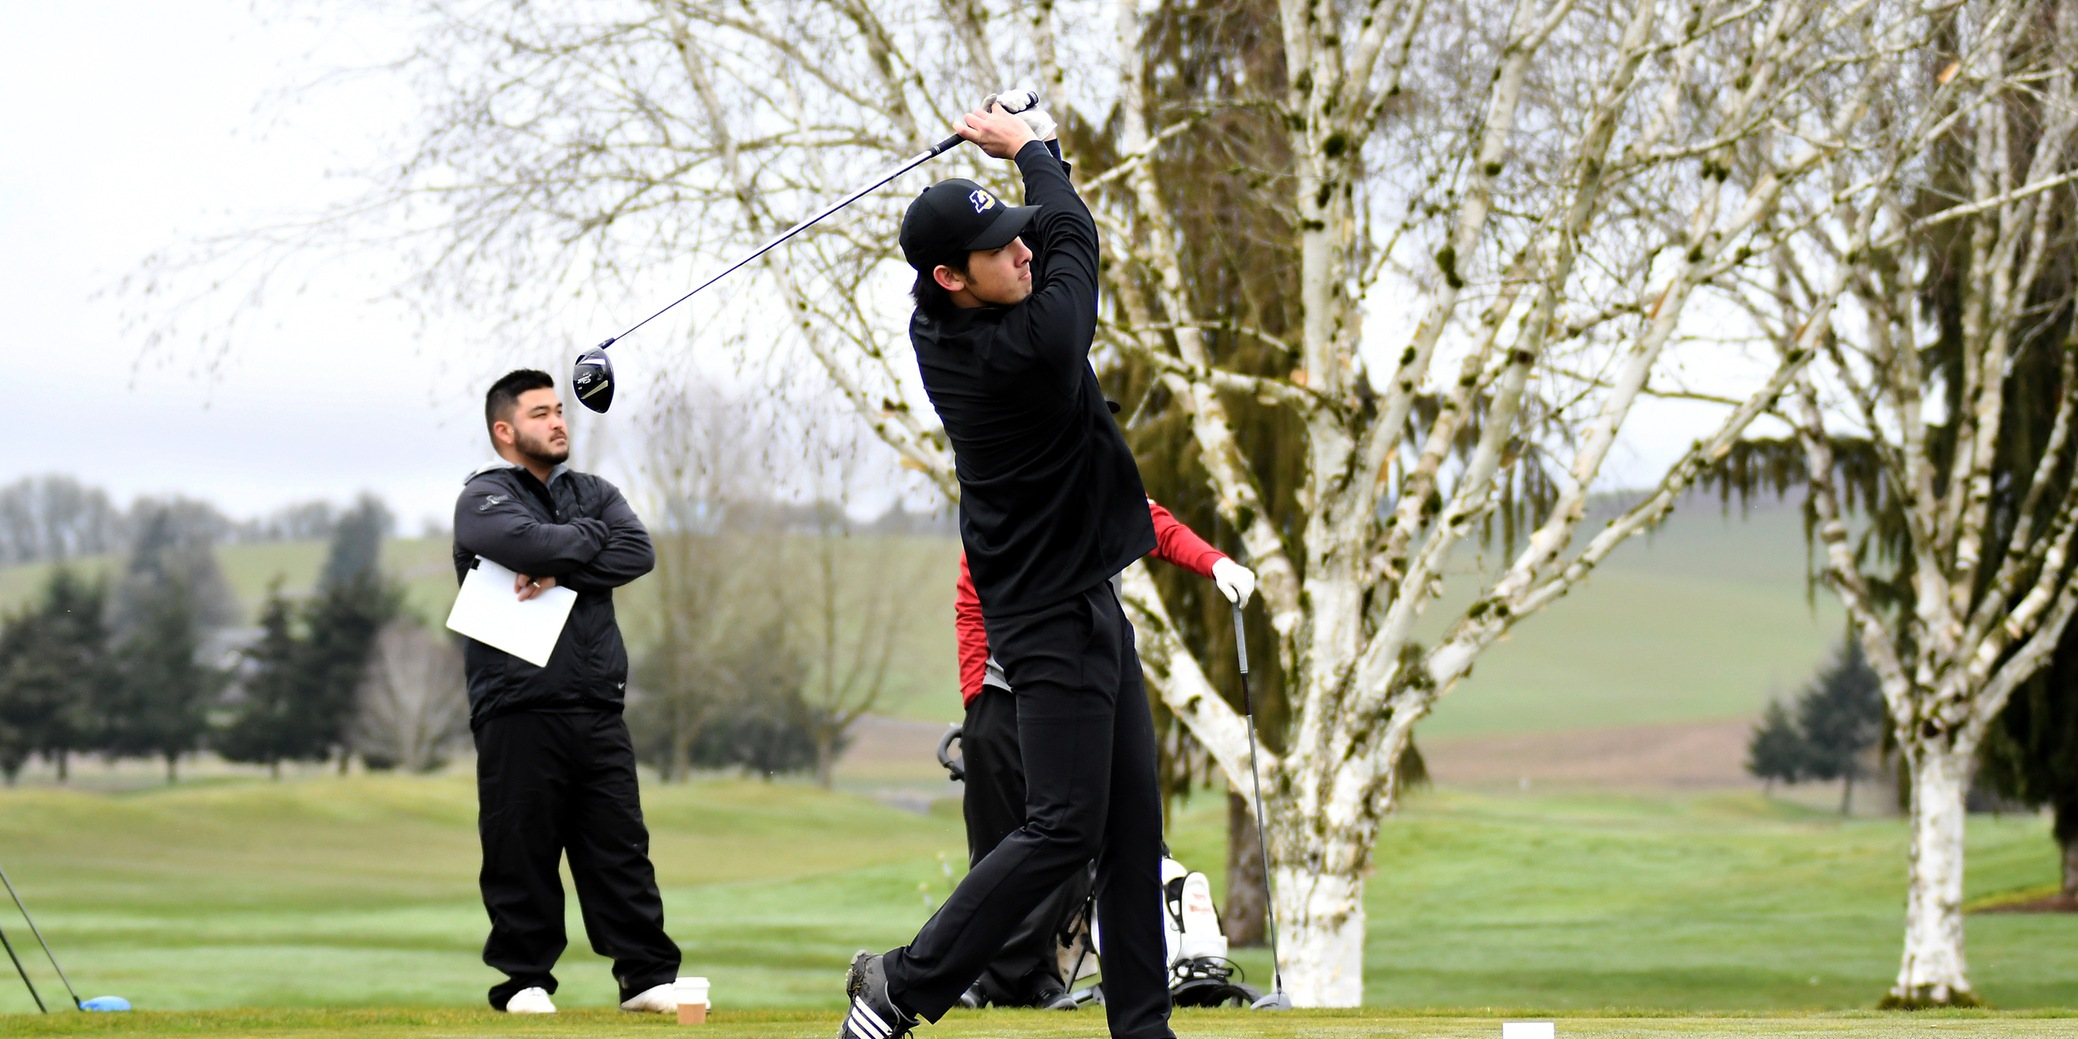 Pioneers finish in fourth after day two of Willamette Valley Cup